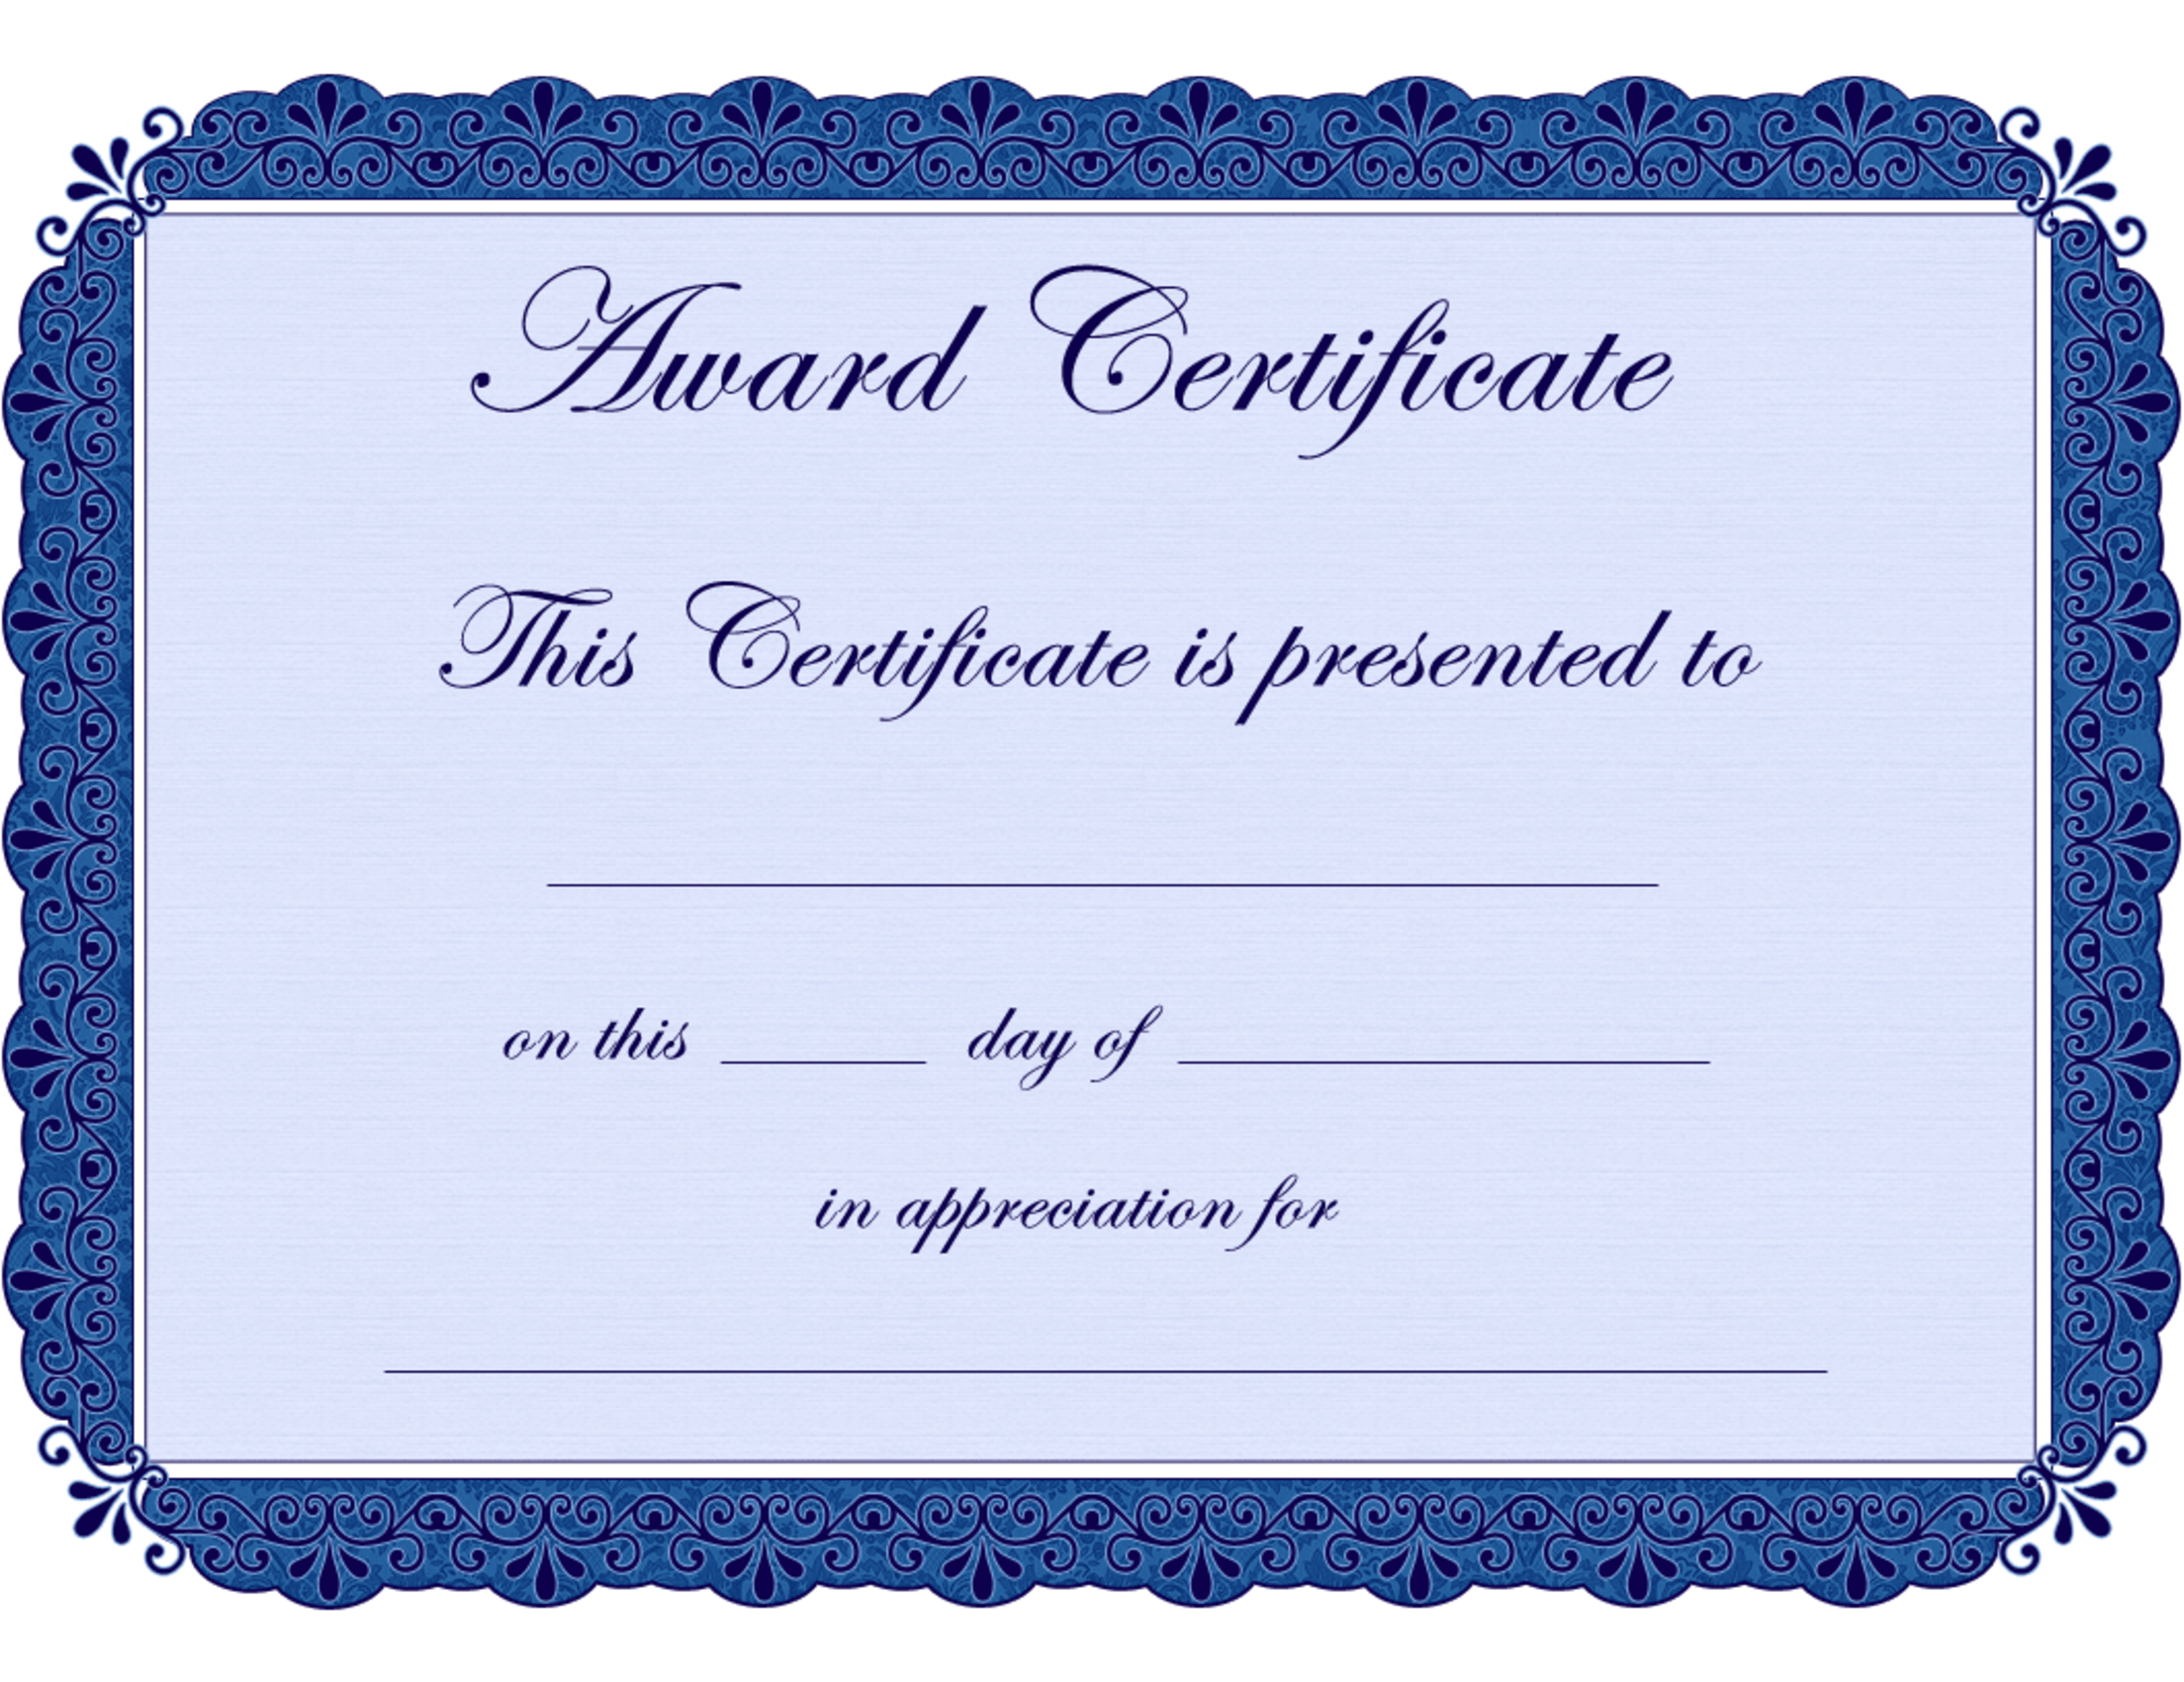 Free printable award certificate borders award certificate free printable award certificate borders award certificate free printable yadclub Image collections